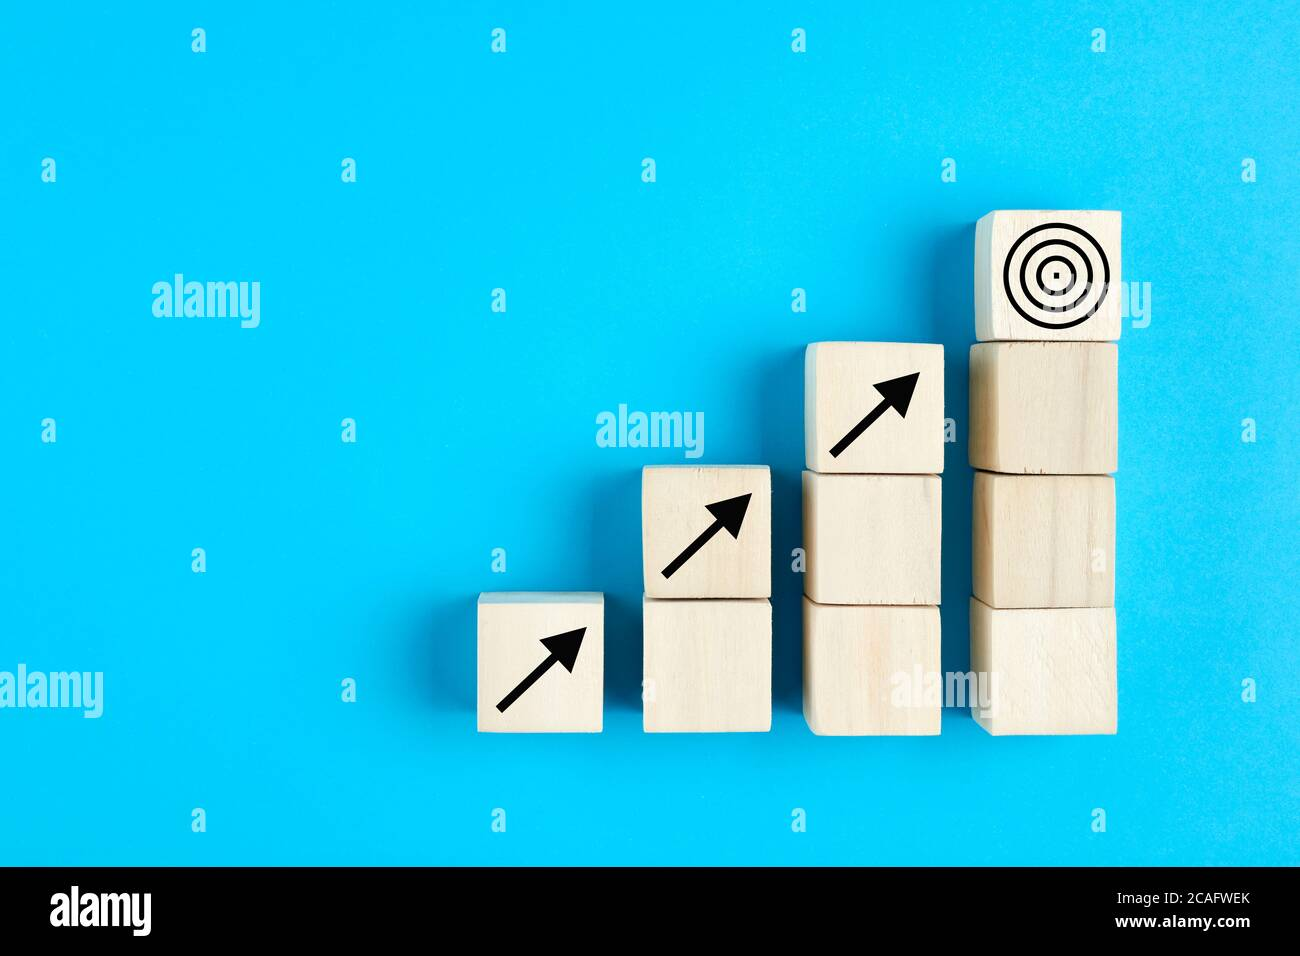 Business or economic growth concept with arrow icons on wooden cubes on blue background Stock Photo